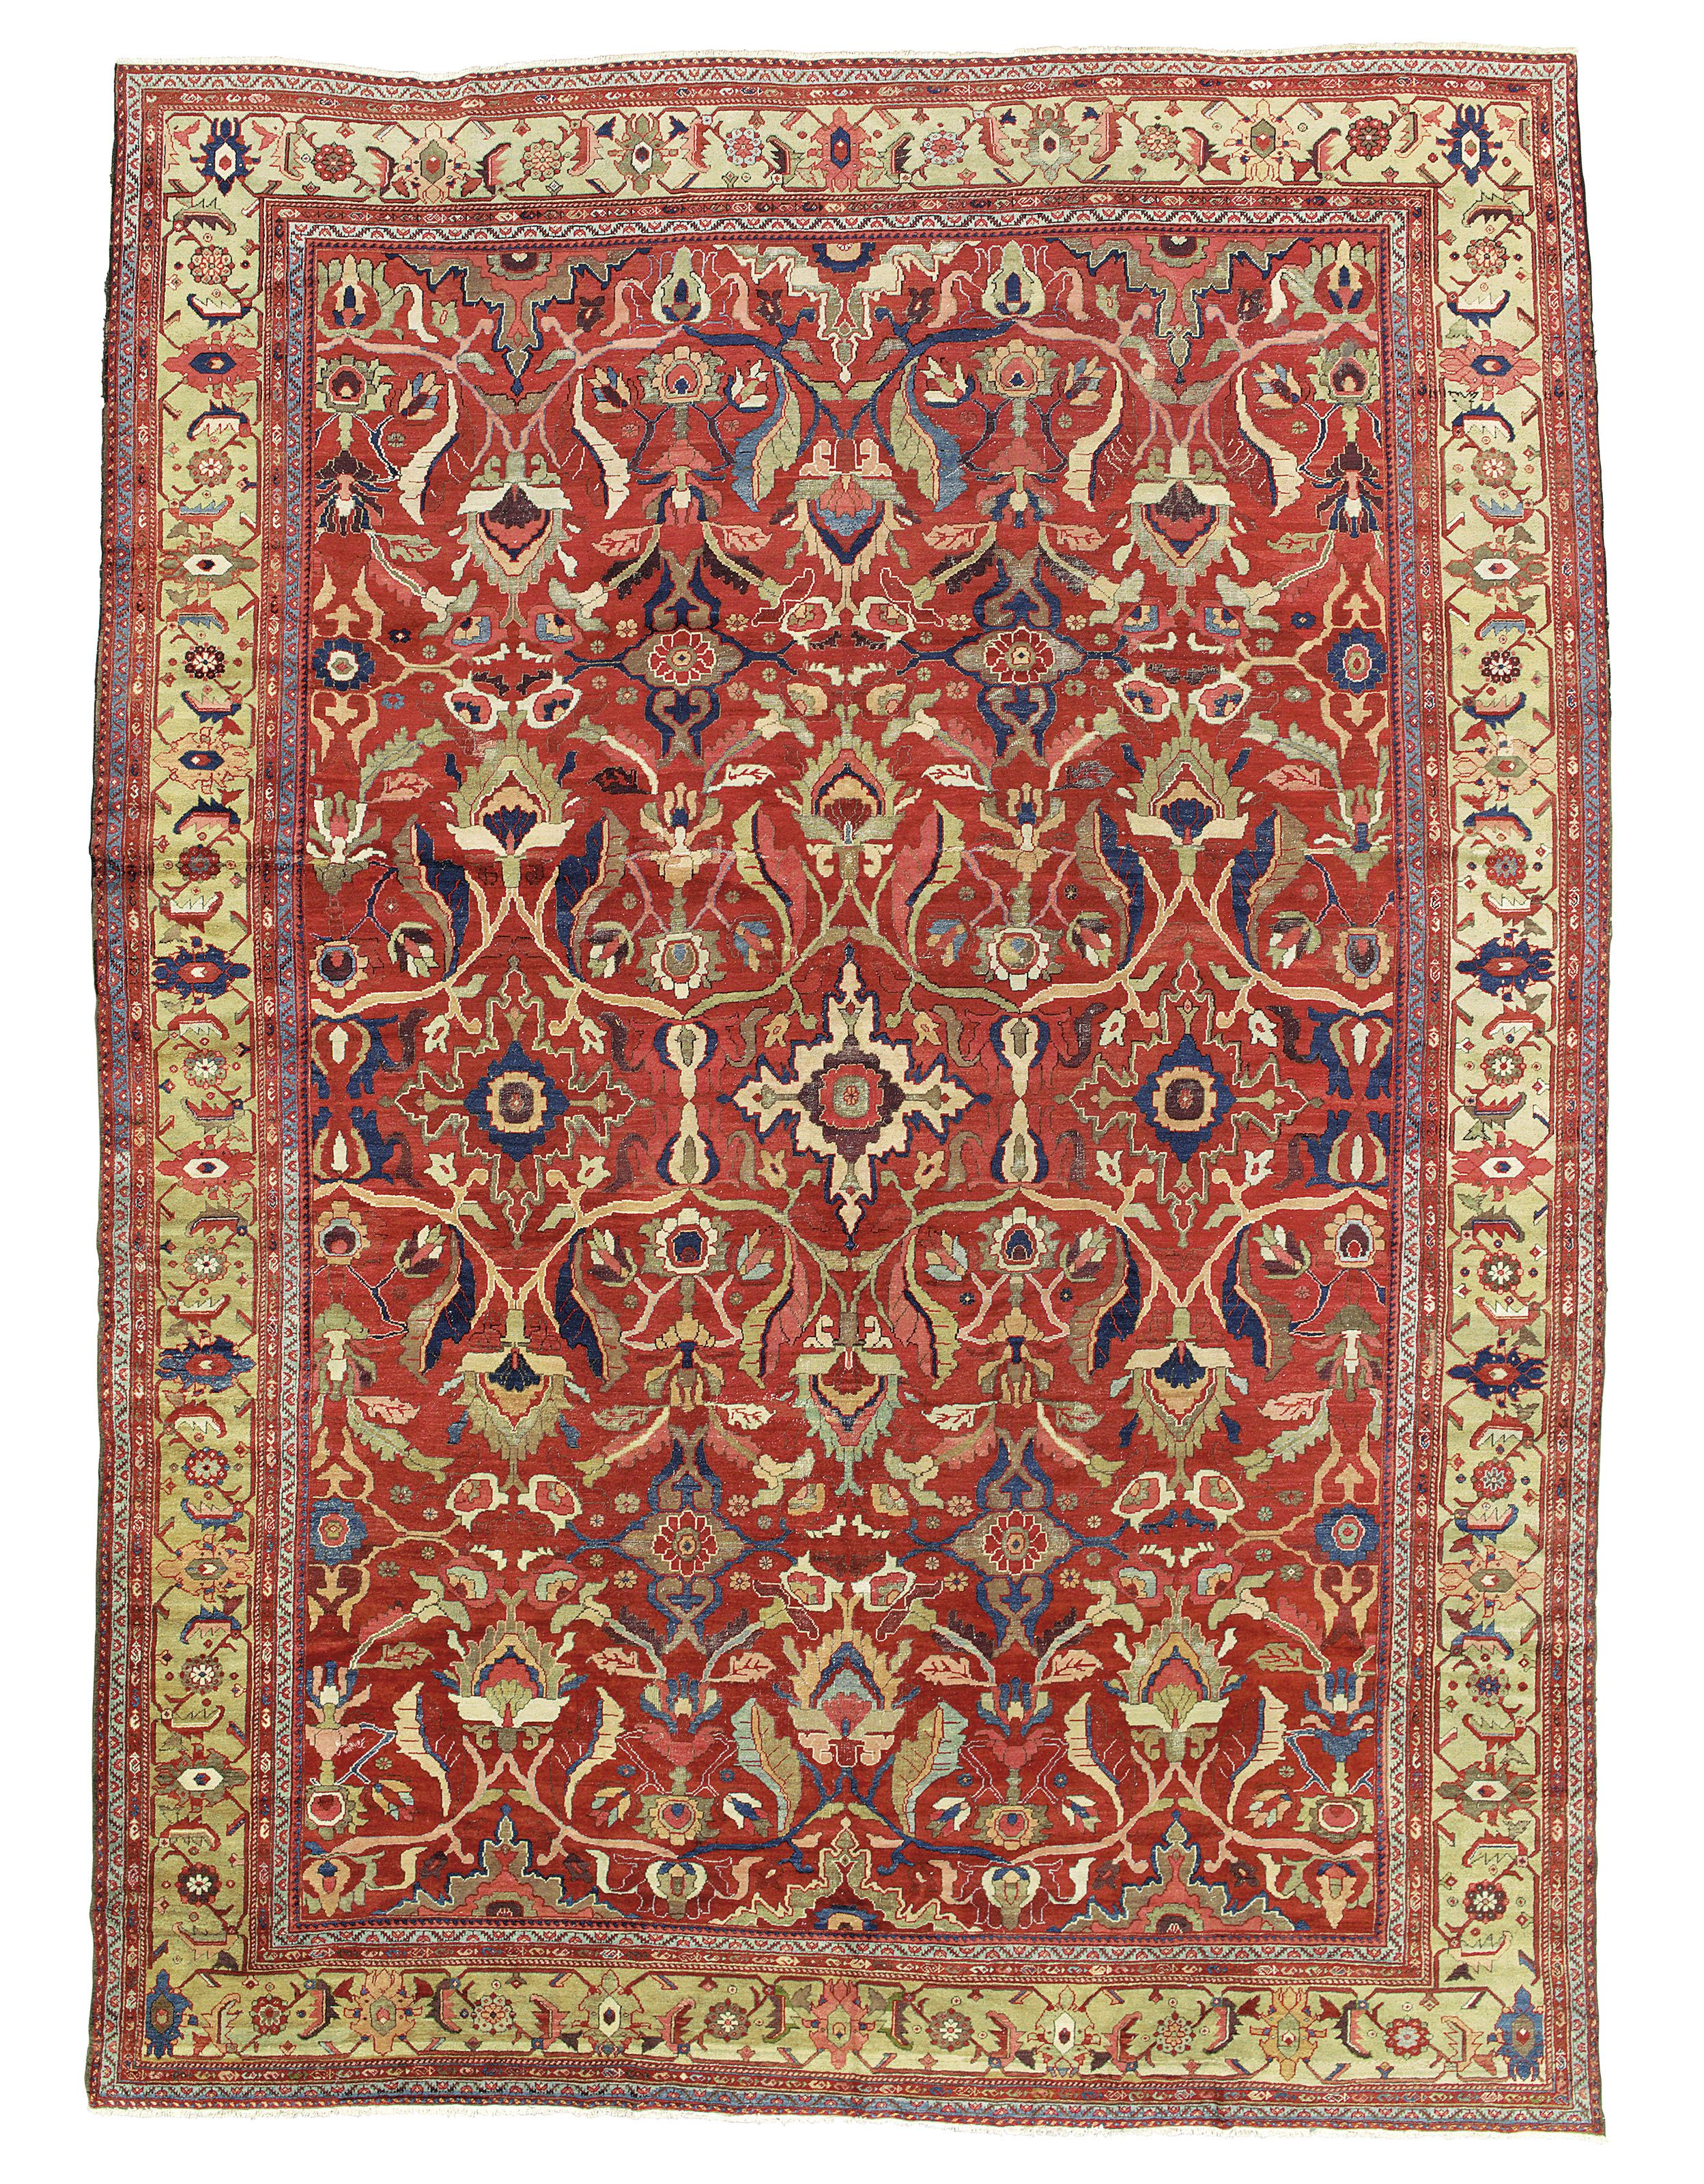 A Sultanabad Carpet West Persia Circa 1890 17ft X 12ft 5in 517cm X 378cm Christie S Persia Oriental Rug Rugs